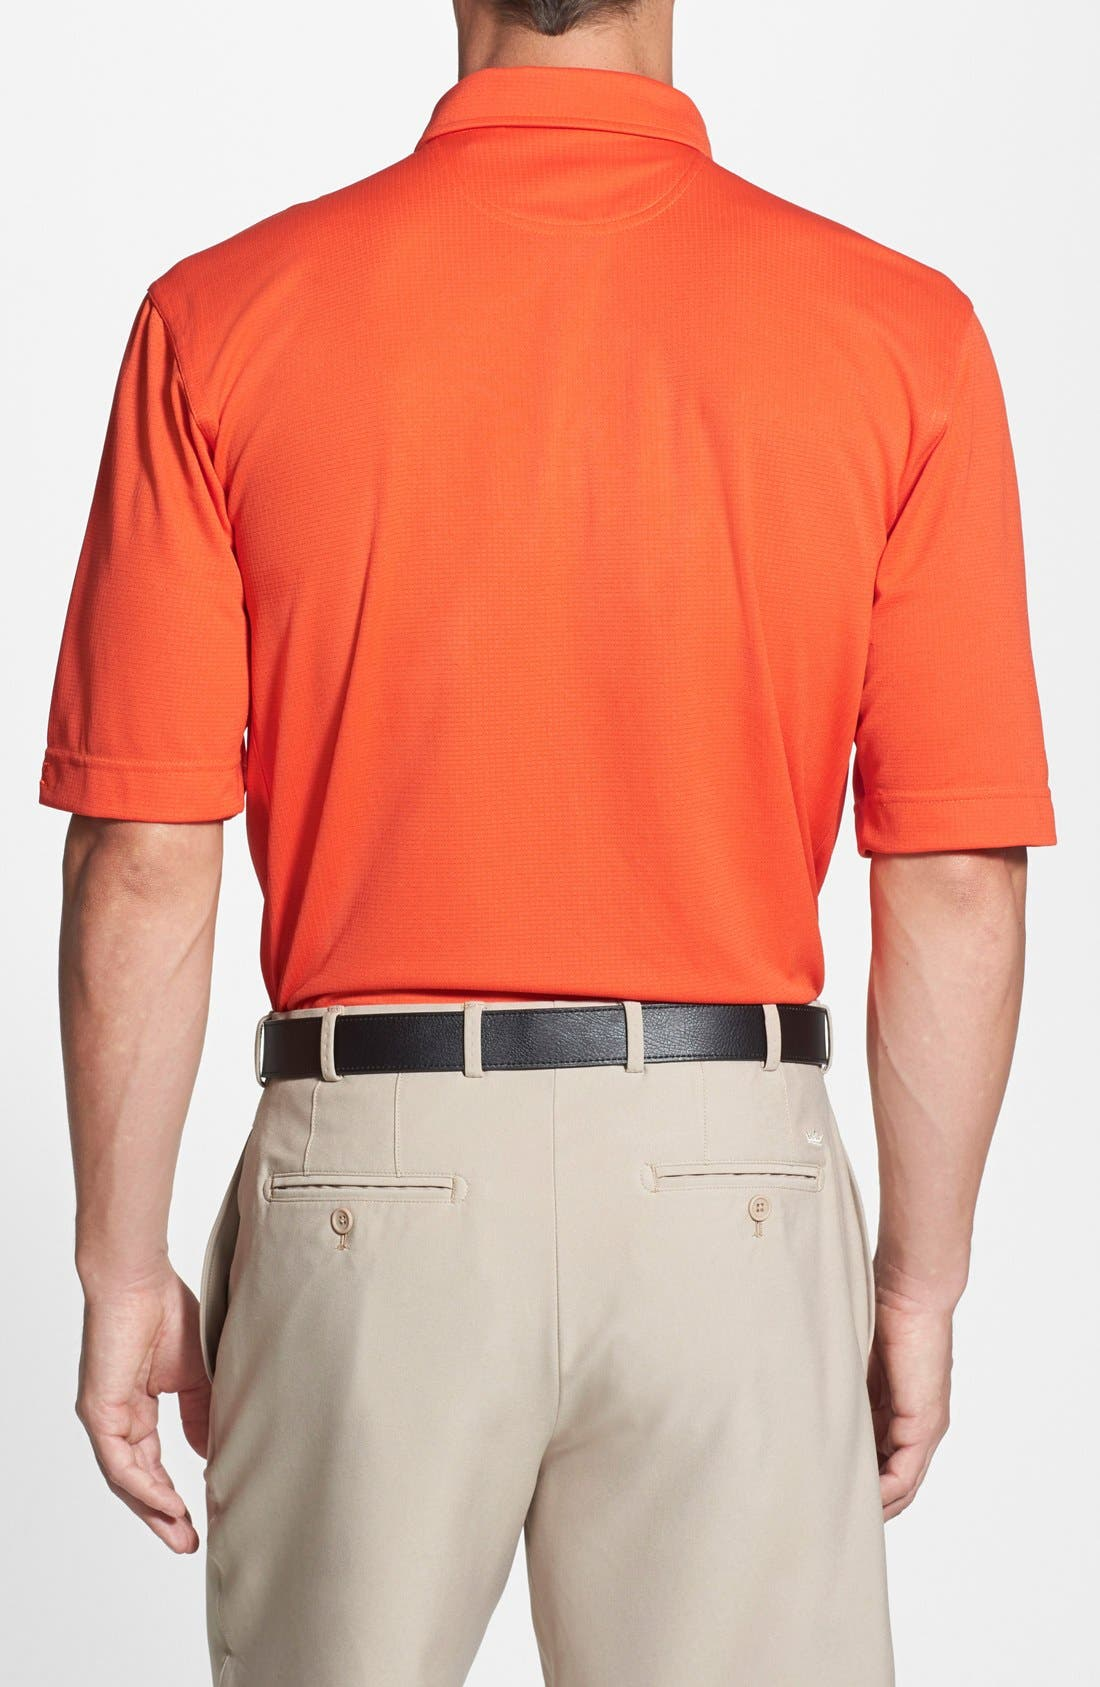 Cleveland Browns - Genre DryTec Moisture Wicking Polo,                             Alternate thumbnail 2, color,